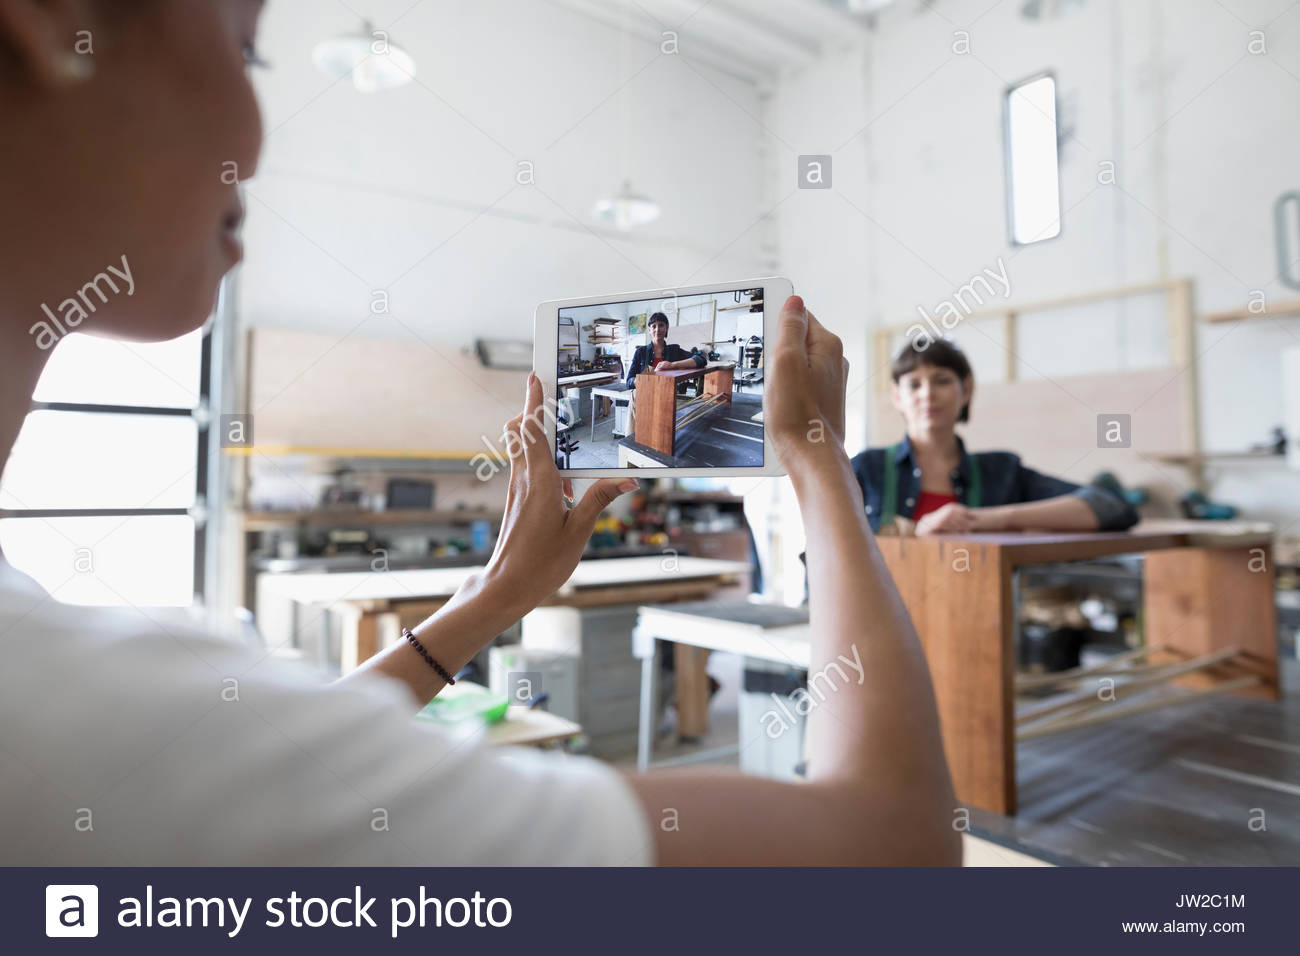 Female carpenter with digital tablet camera photographing coworker with wood bench in workshop - Stock Image